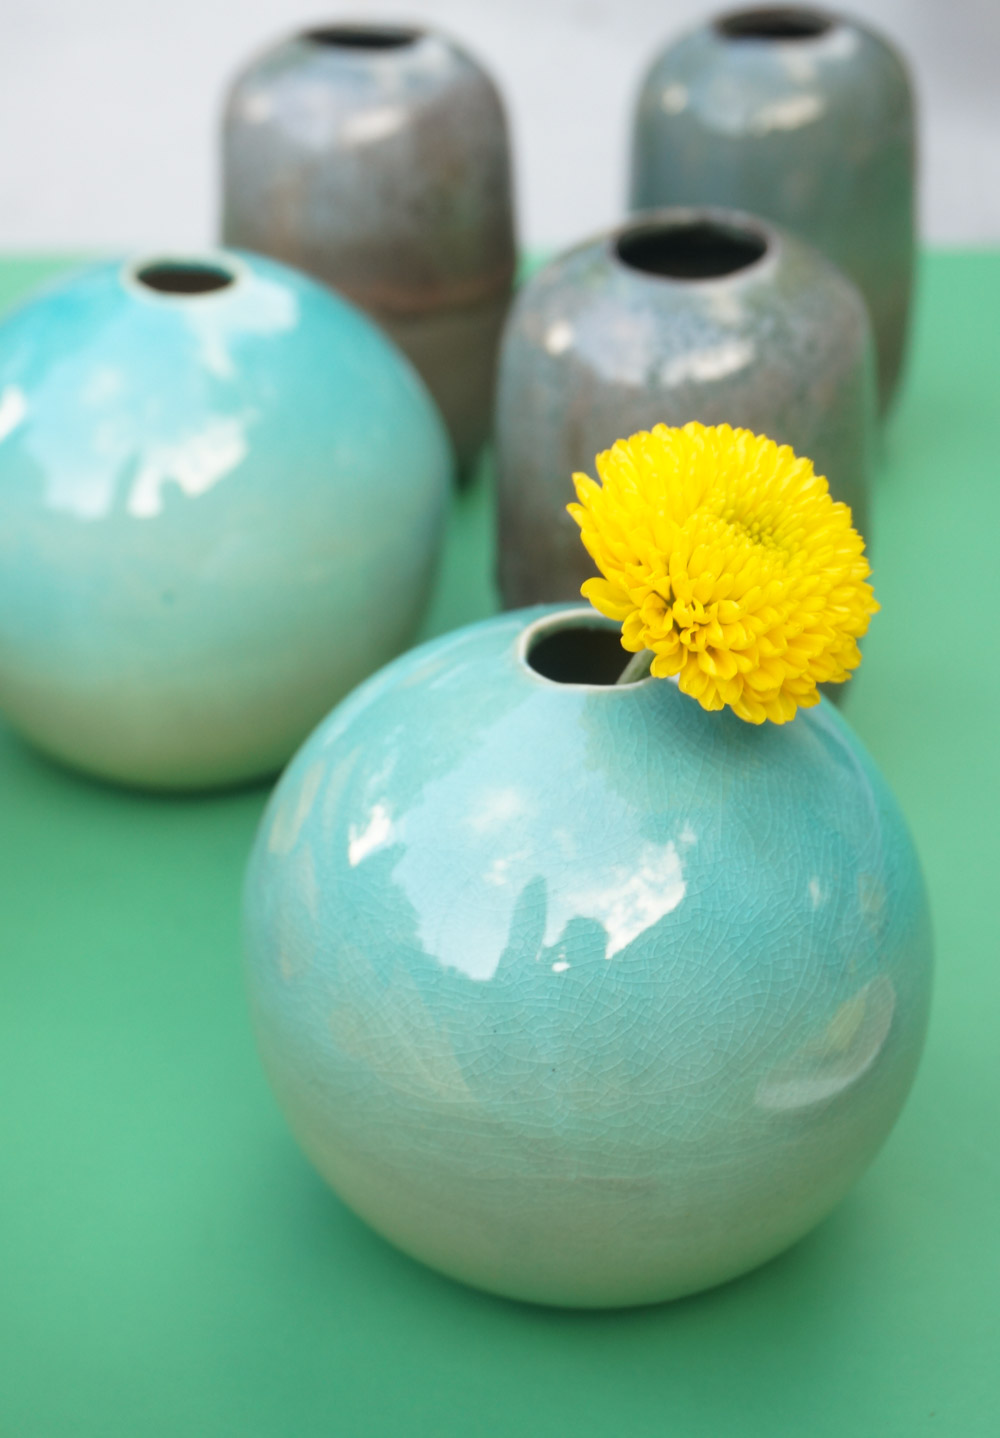 Spherical bud vase from CB2